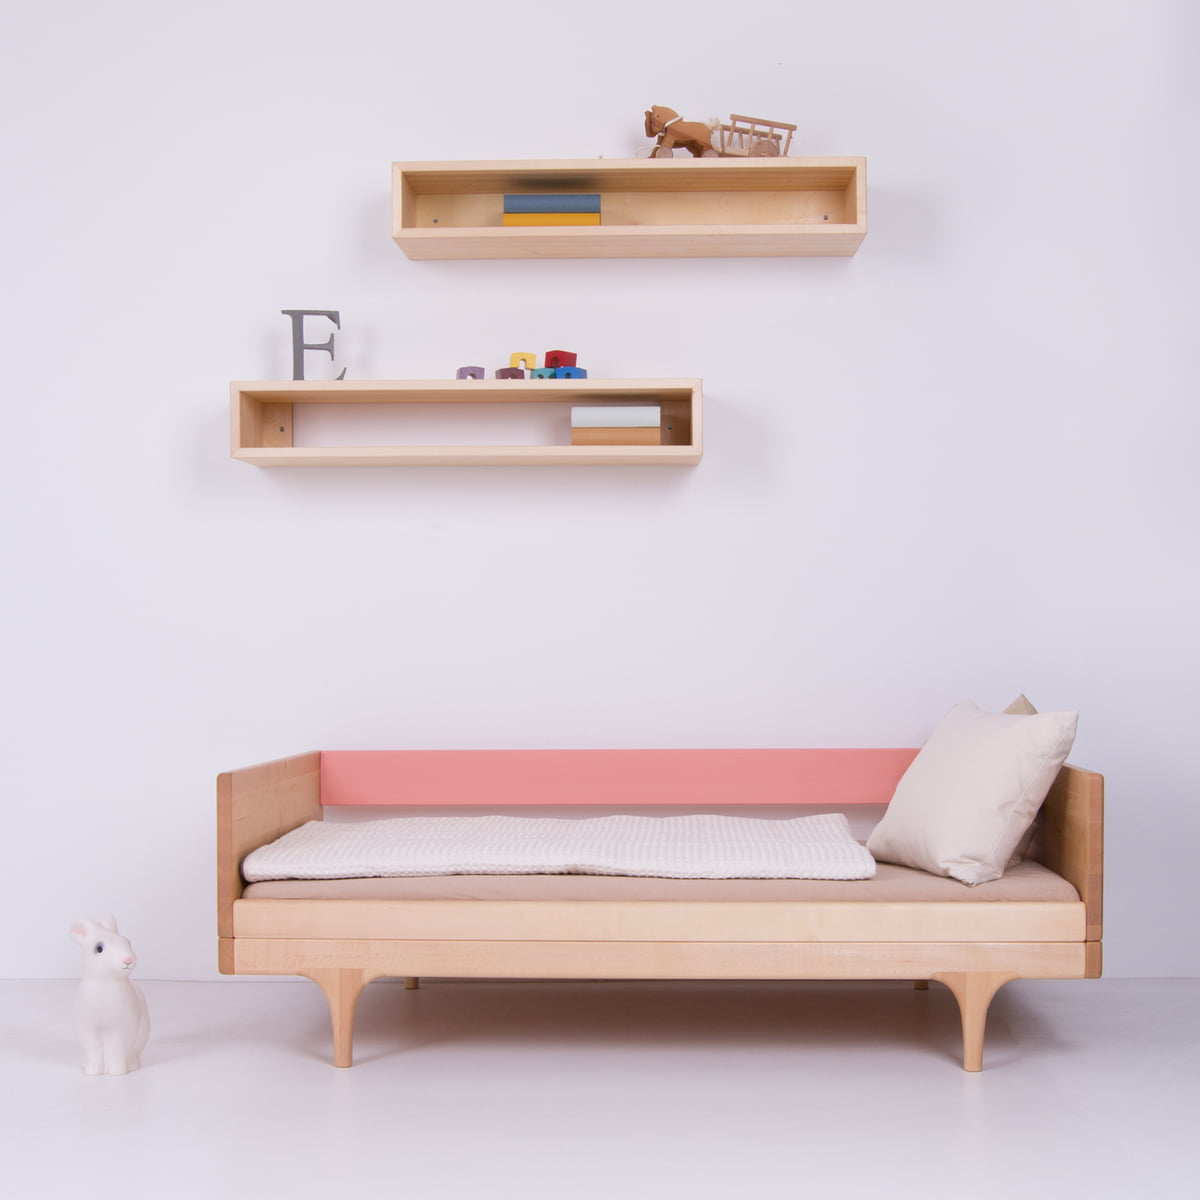 caravan junior bed of kalon in the shop